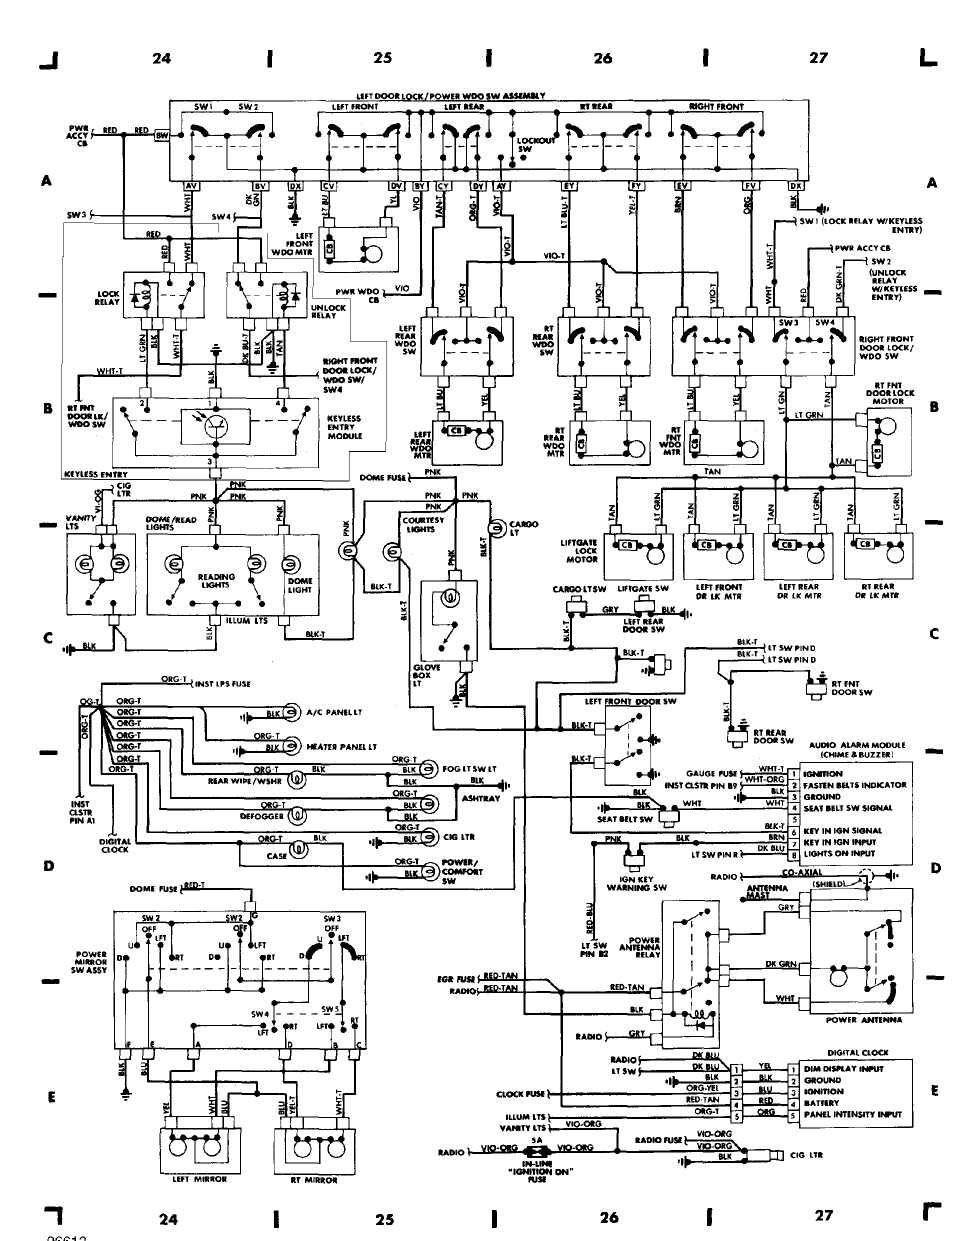 wiring_diagrams_html_61f5e0ad wiring diagrams 1984 1991 jeep cherokee (xj) jeep engine wiring harness for 1997 jeep grand cherokee at bayanpartner.co